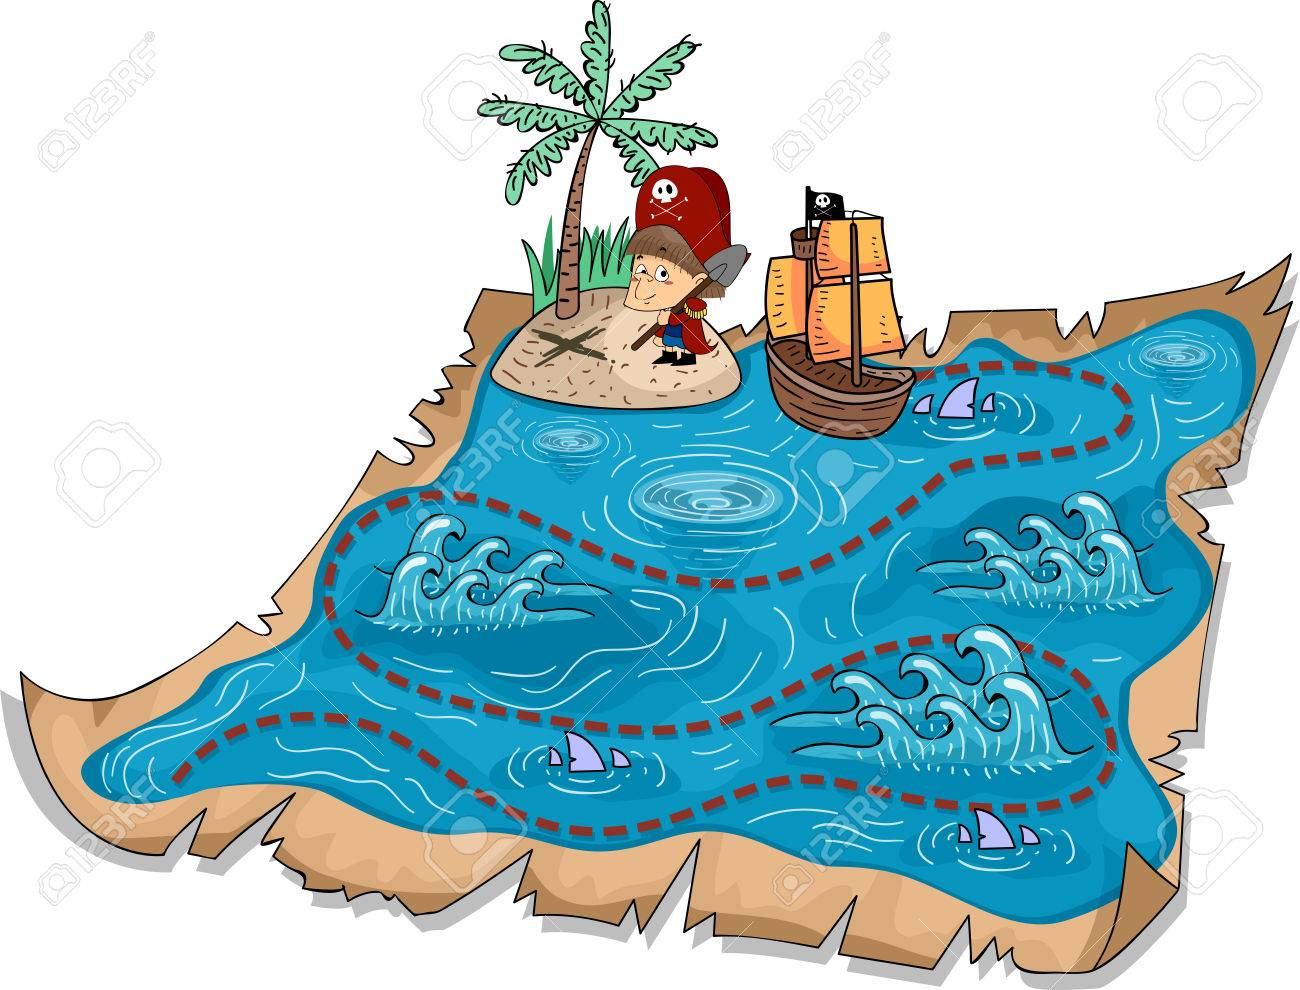 Illustration of a Treasure Map with Three-Dimensional Markers Stock Photo - 24226912